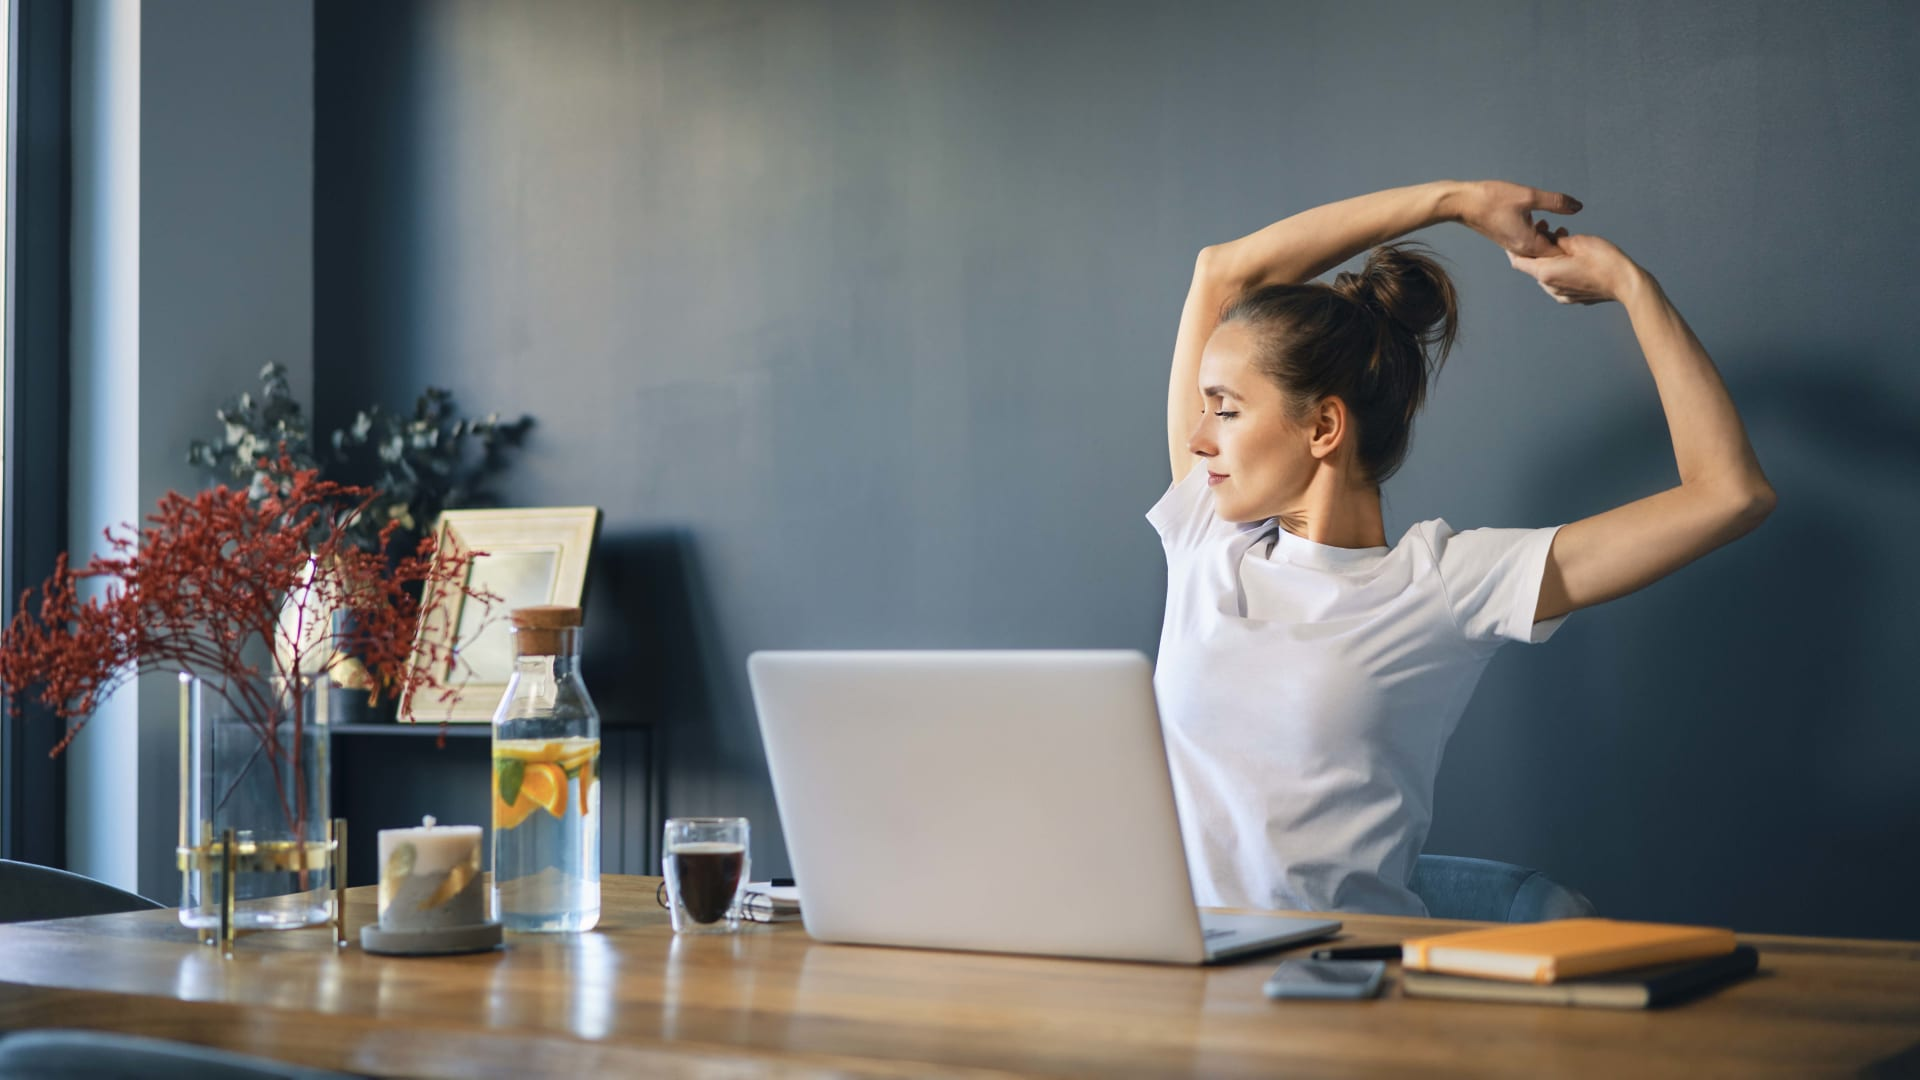 3 Ways to Make Your Work From Home Space Kind to Your Body